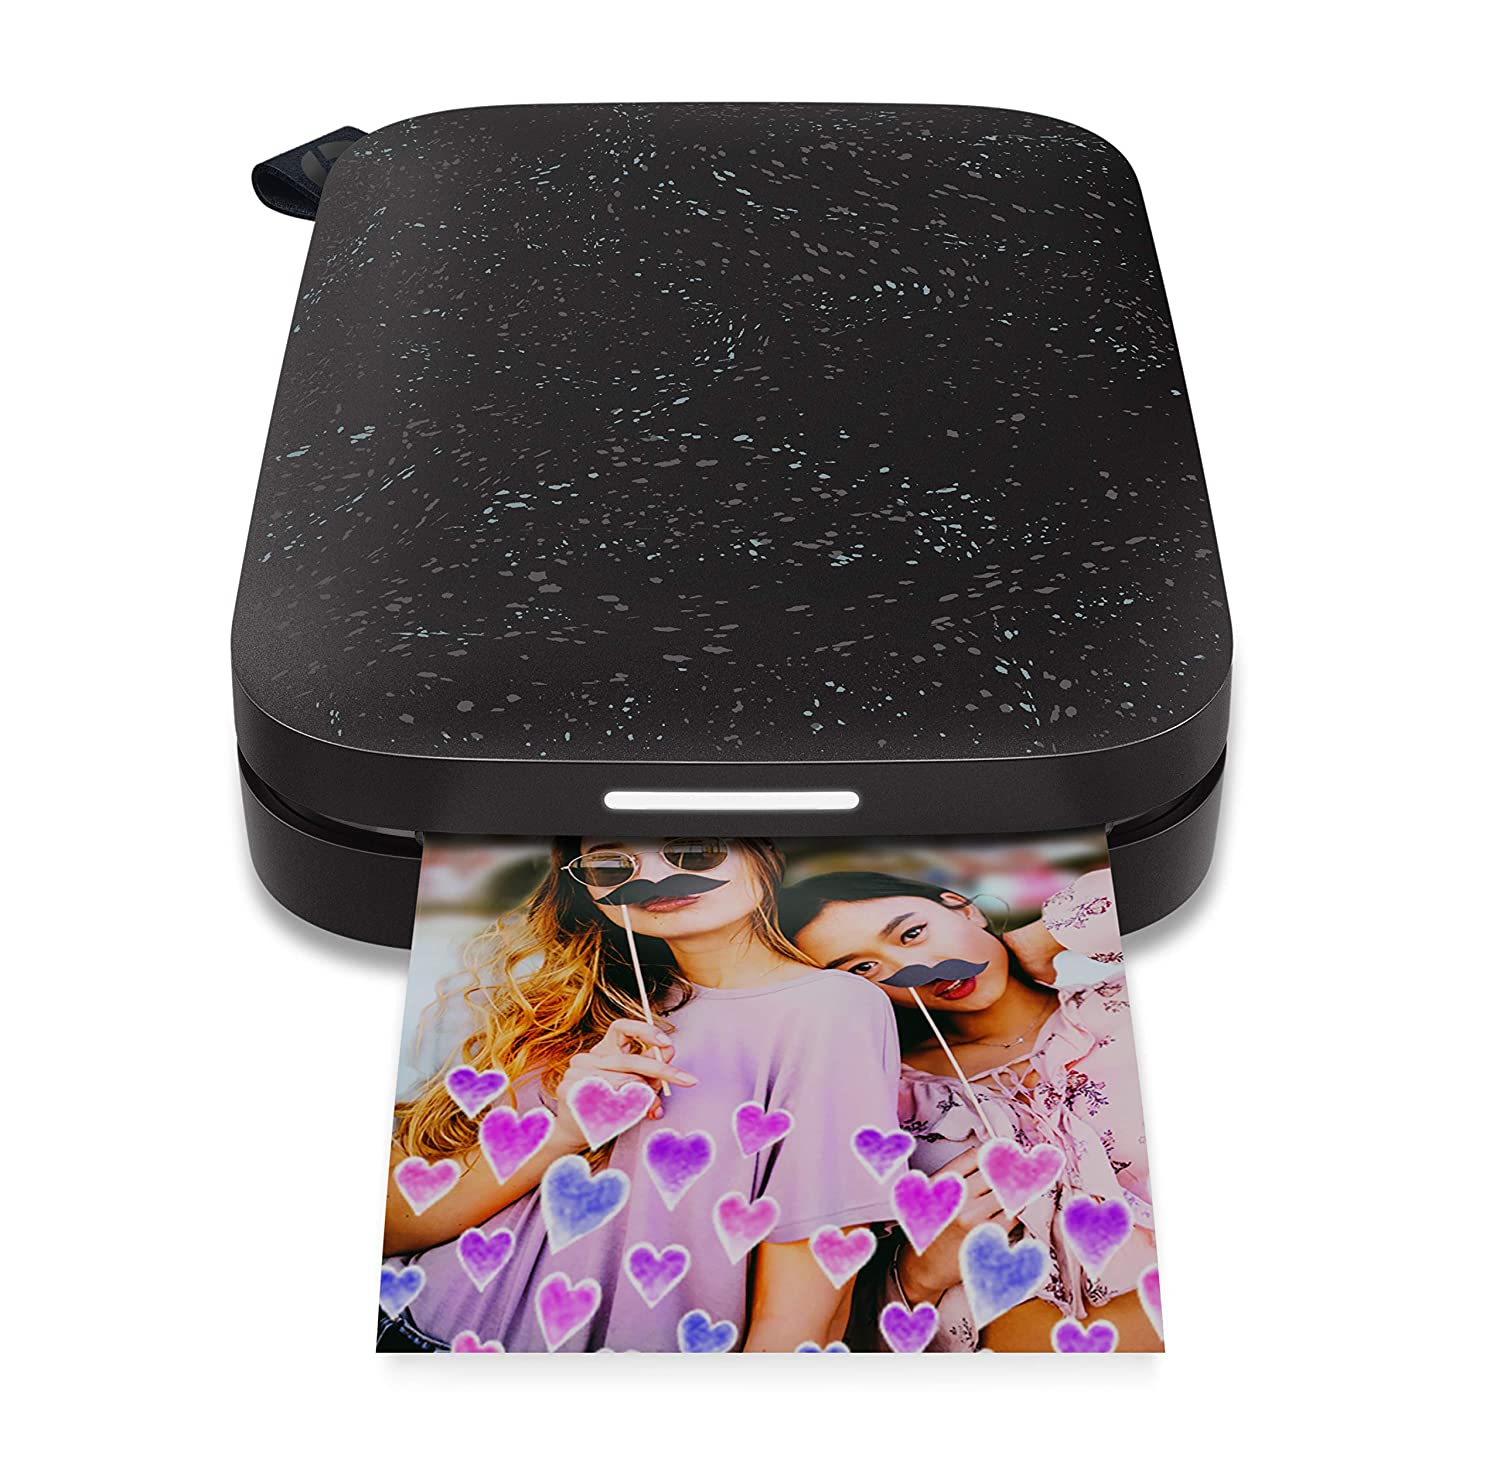 HP Sprocket Portable Photo Printer (2nd Edition) – Instantly Print 2x3 Sticky-Backed Photos from Your Phone – [Noir] [1AS86A]